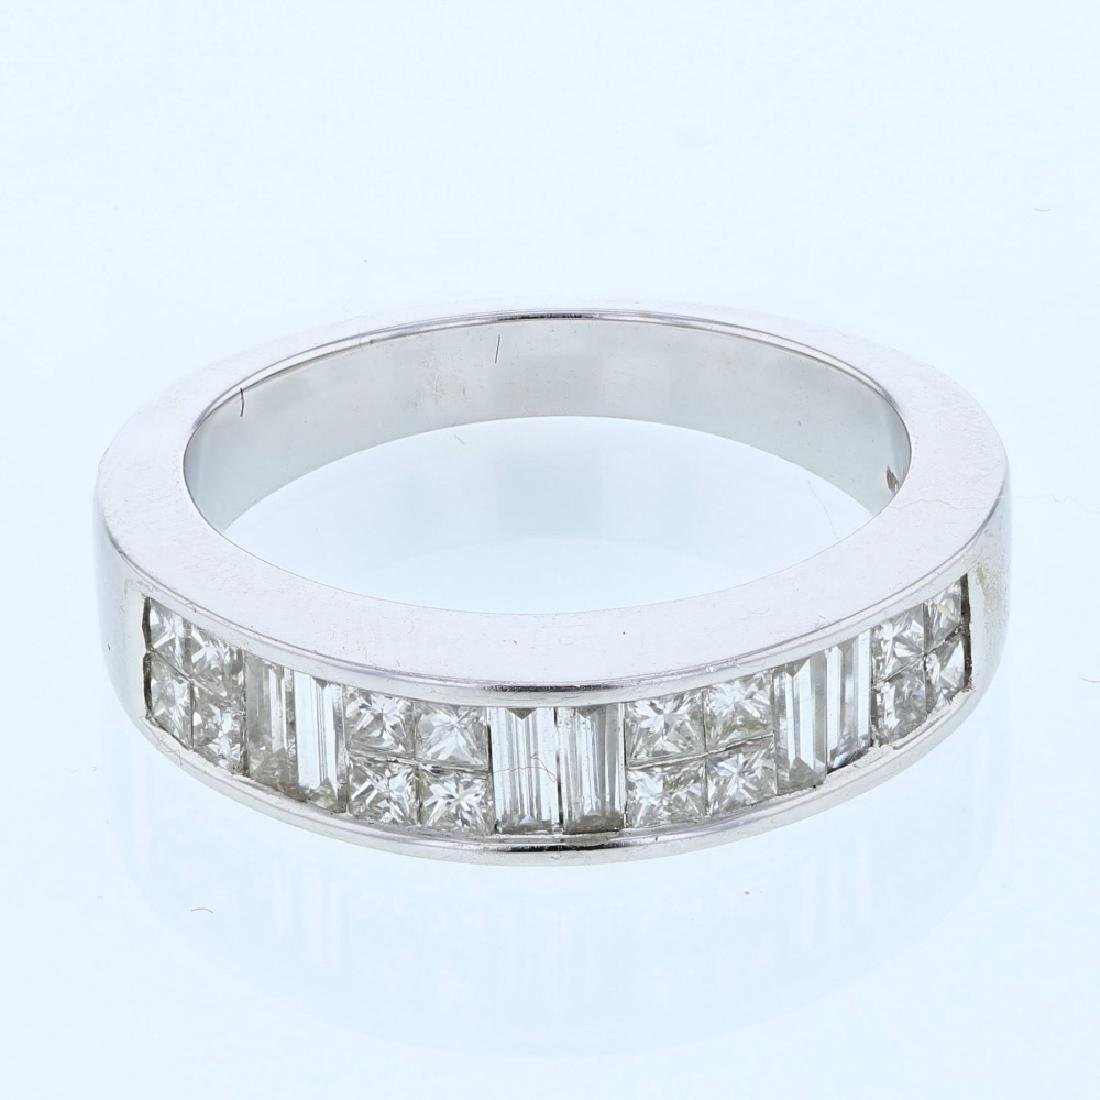 Princess and Baguette Invisible-Set Diamond Ring in 14K